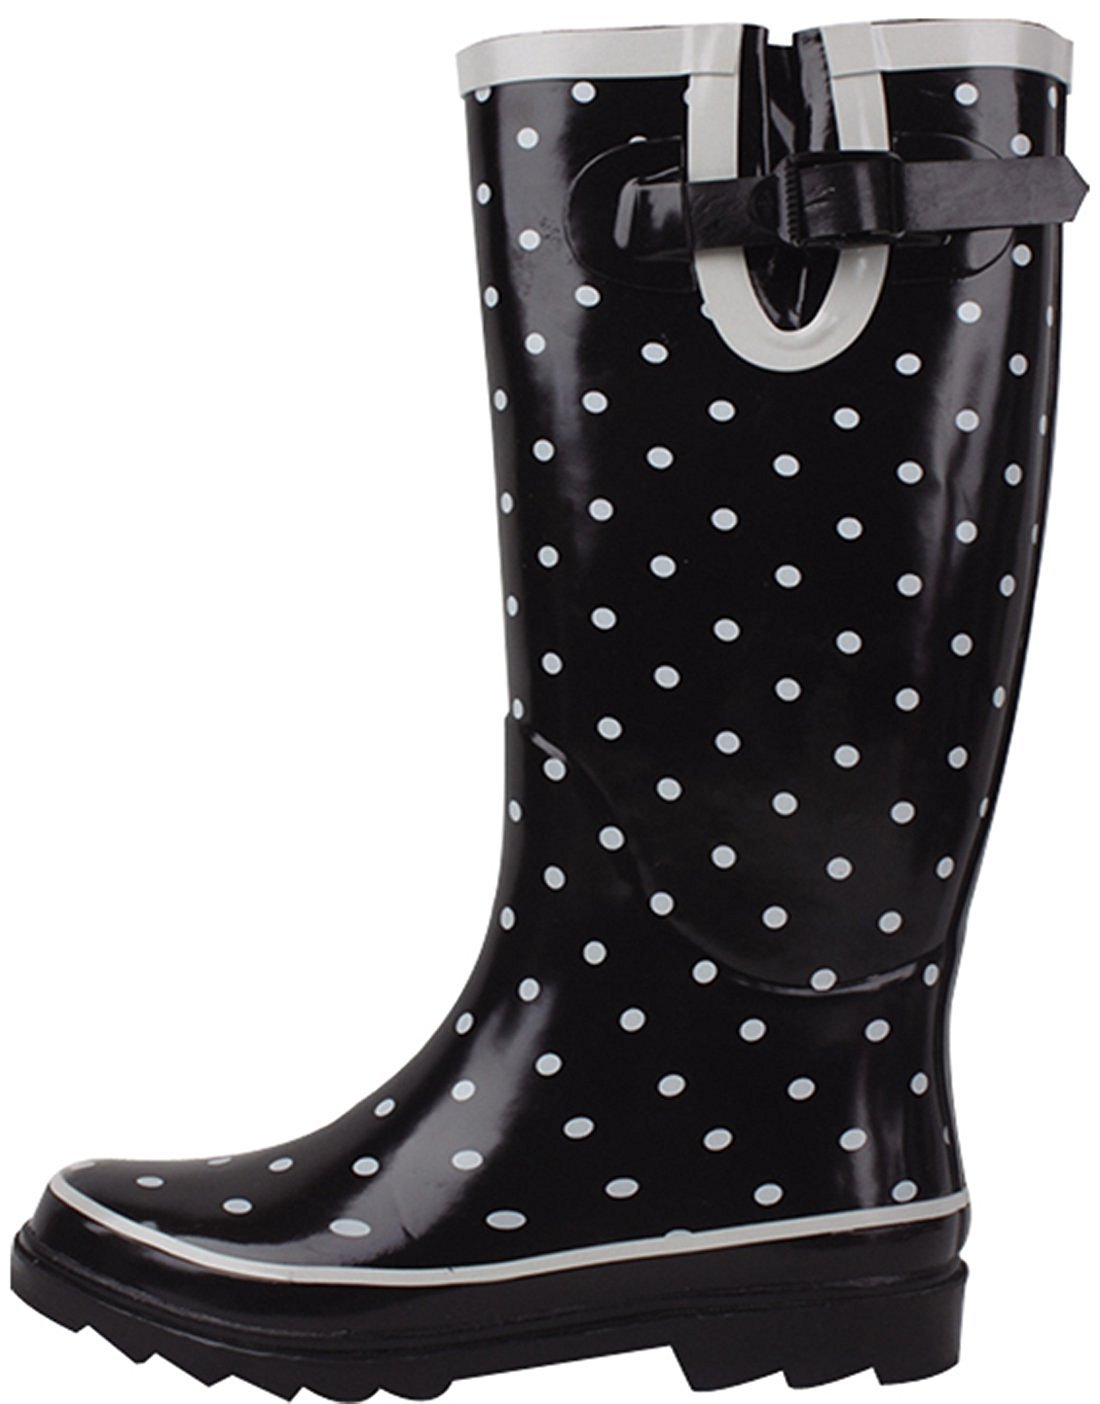 SBC Women's Rain Boots Adjustable Buckle Fashion Mid Calf Wellies Rubber Knee High Snow Multiple Styles B00KJ0SQC0 11 B(M) US|Black Polka Dots